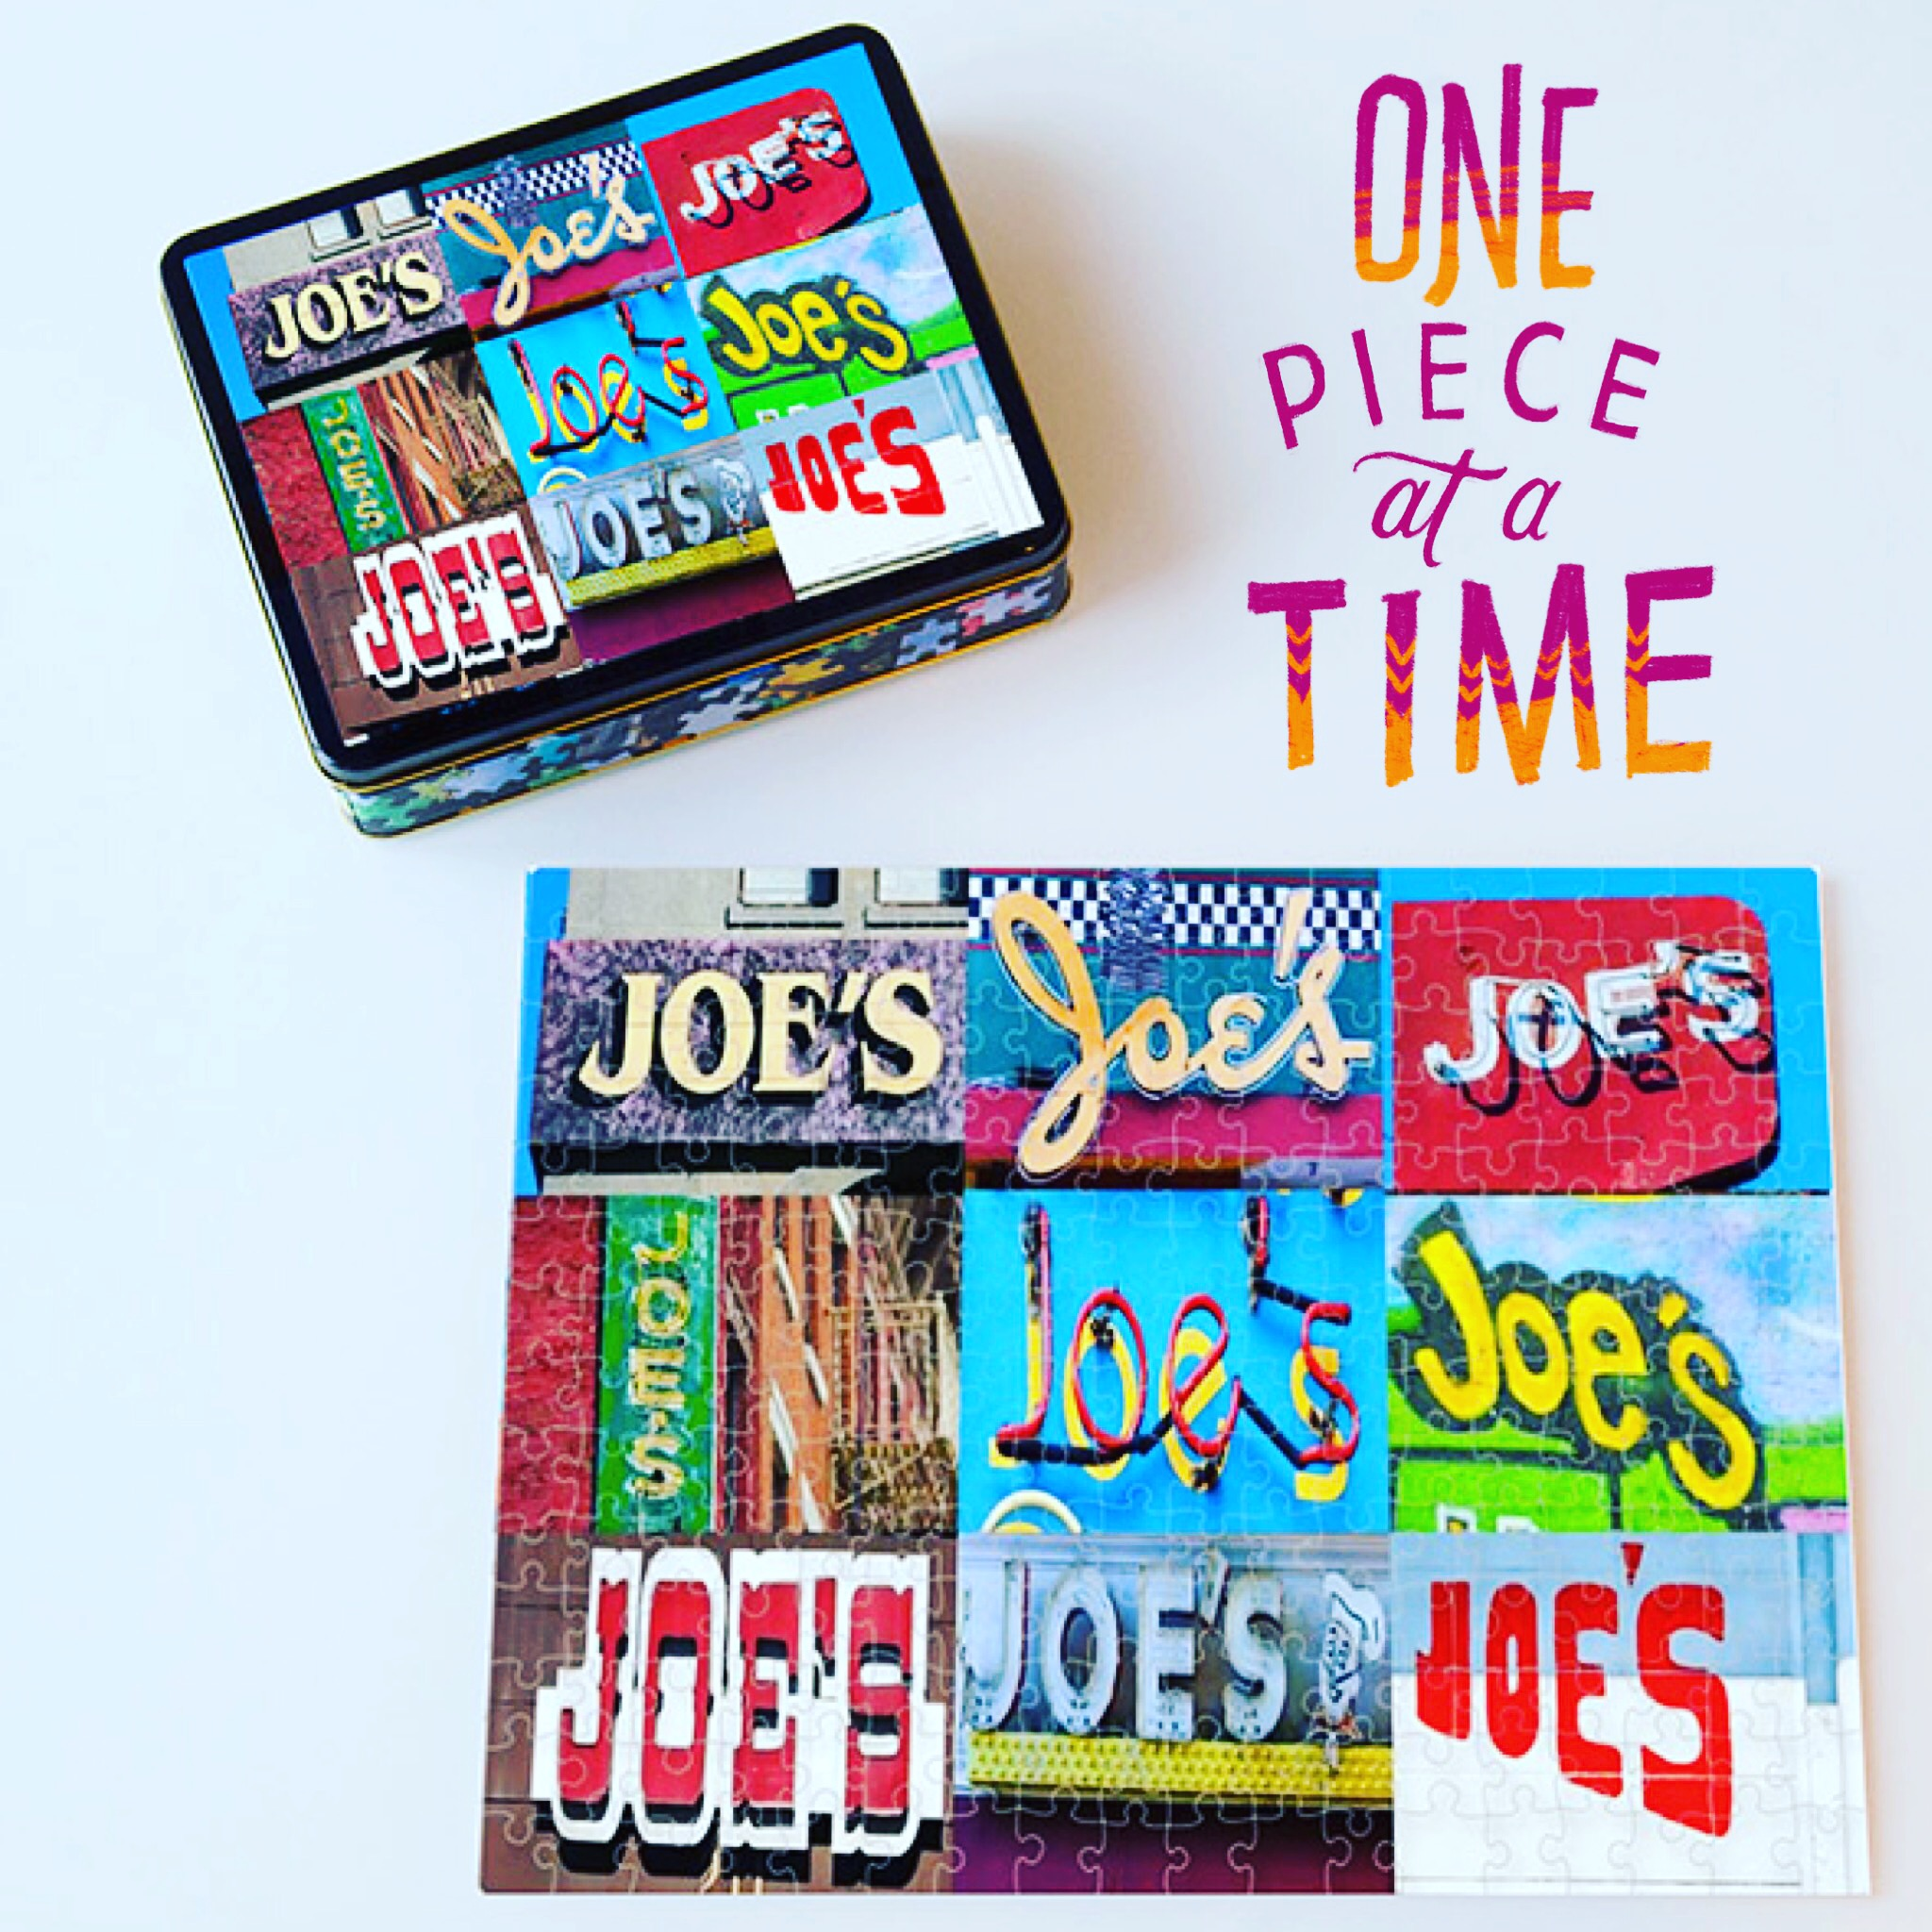 https://www.etsy.com/listing/524629127/personalized-puzzle-featuring-the-name?ref=shop_home_active_1